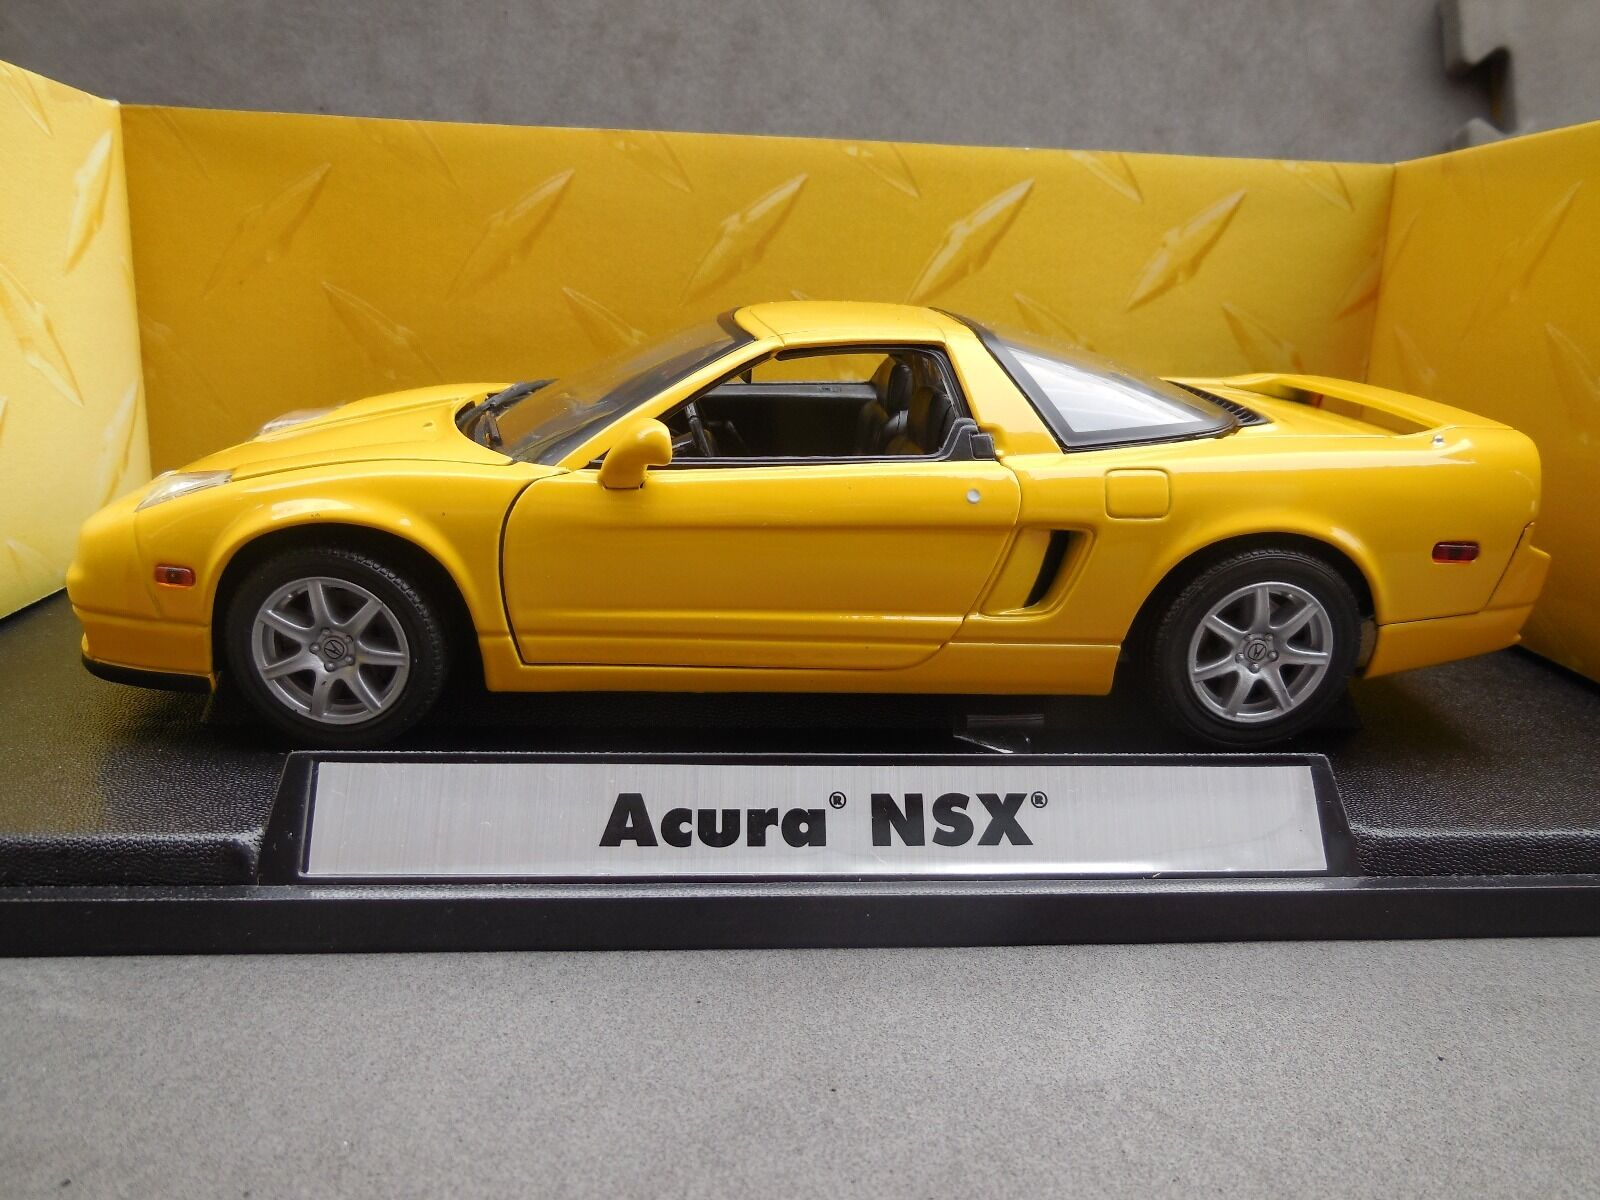 Motormax Acura NSX Yellow 1 18 Diecast Model - Premier Collection